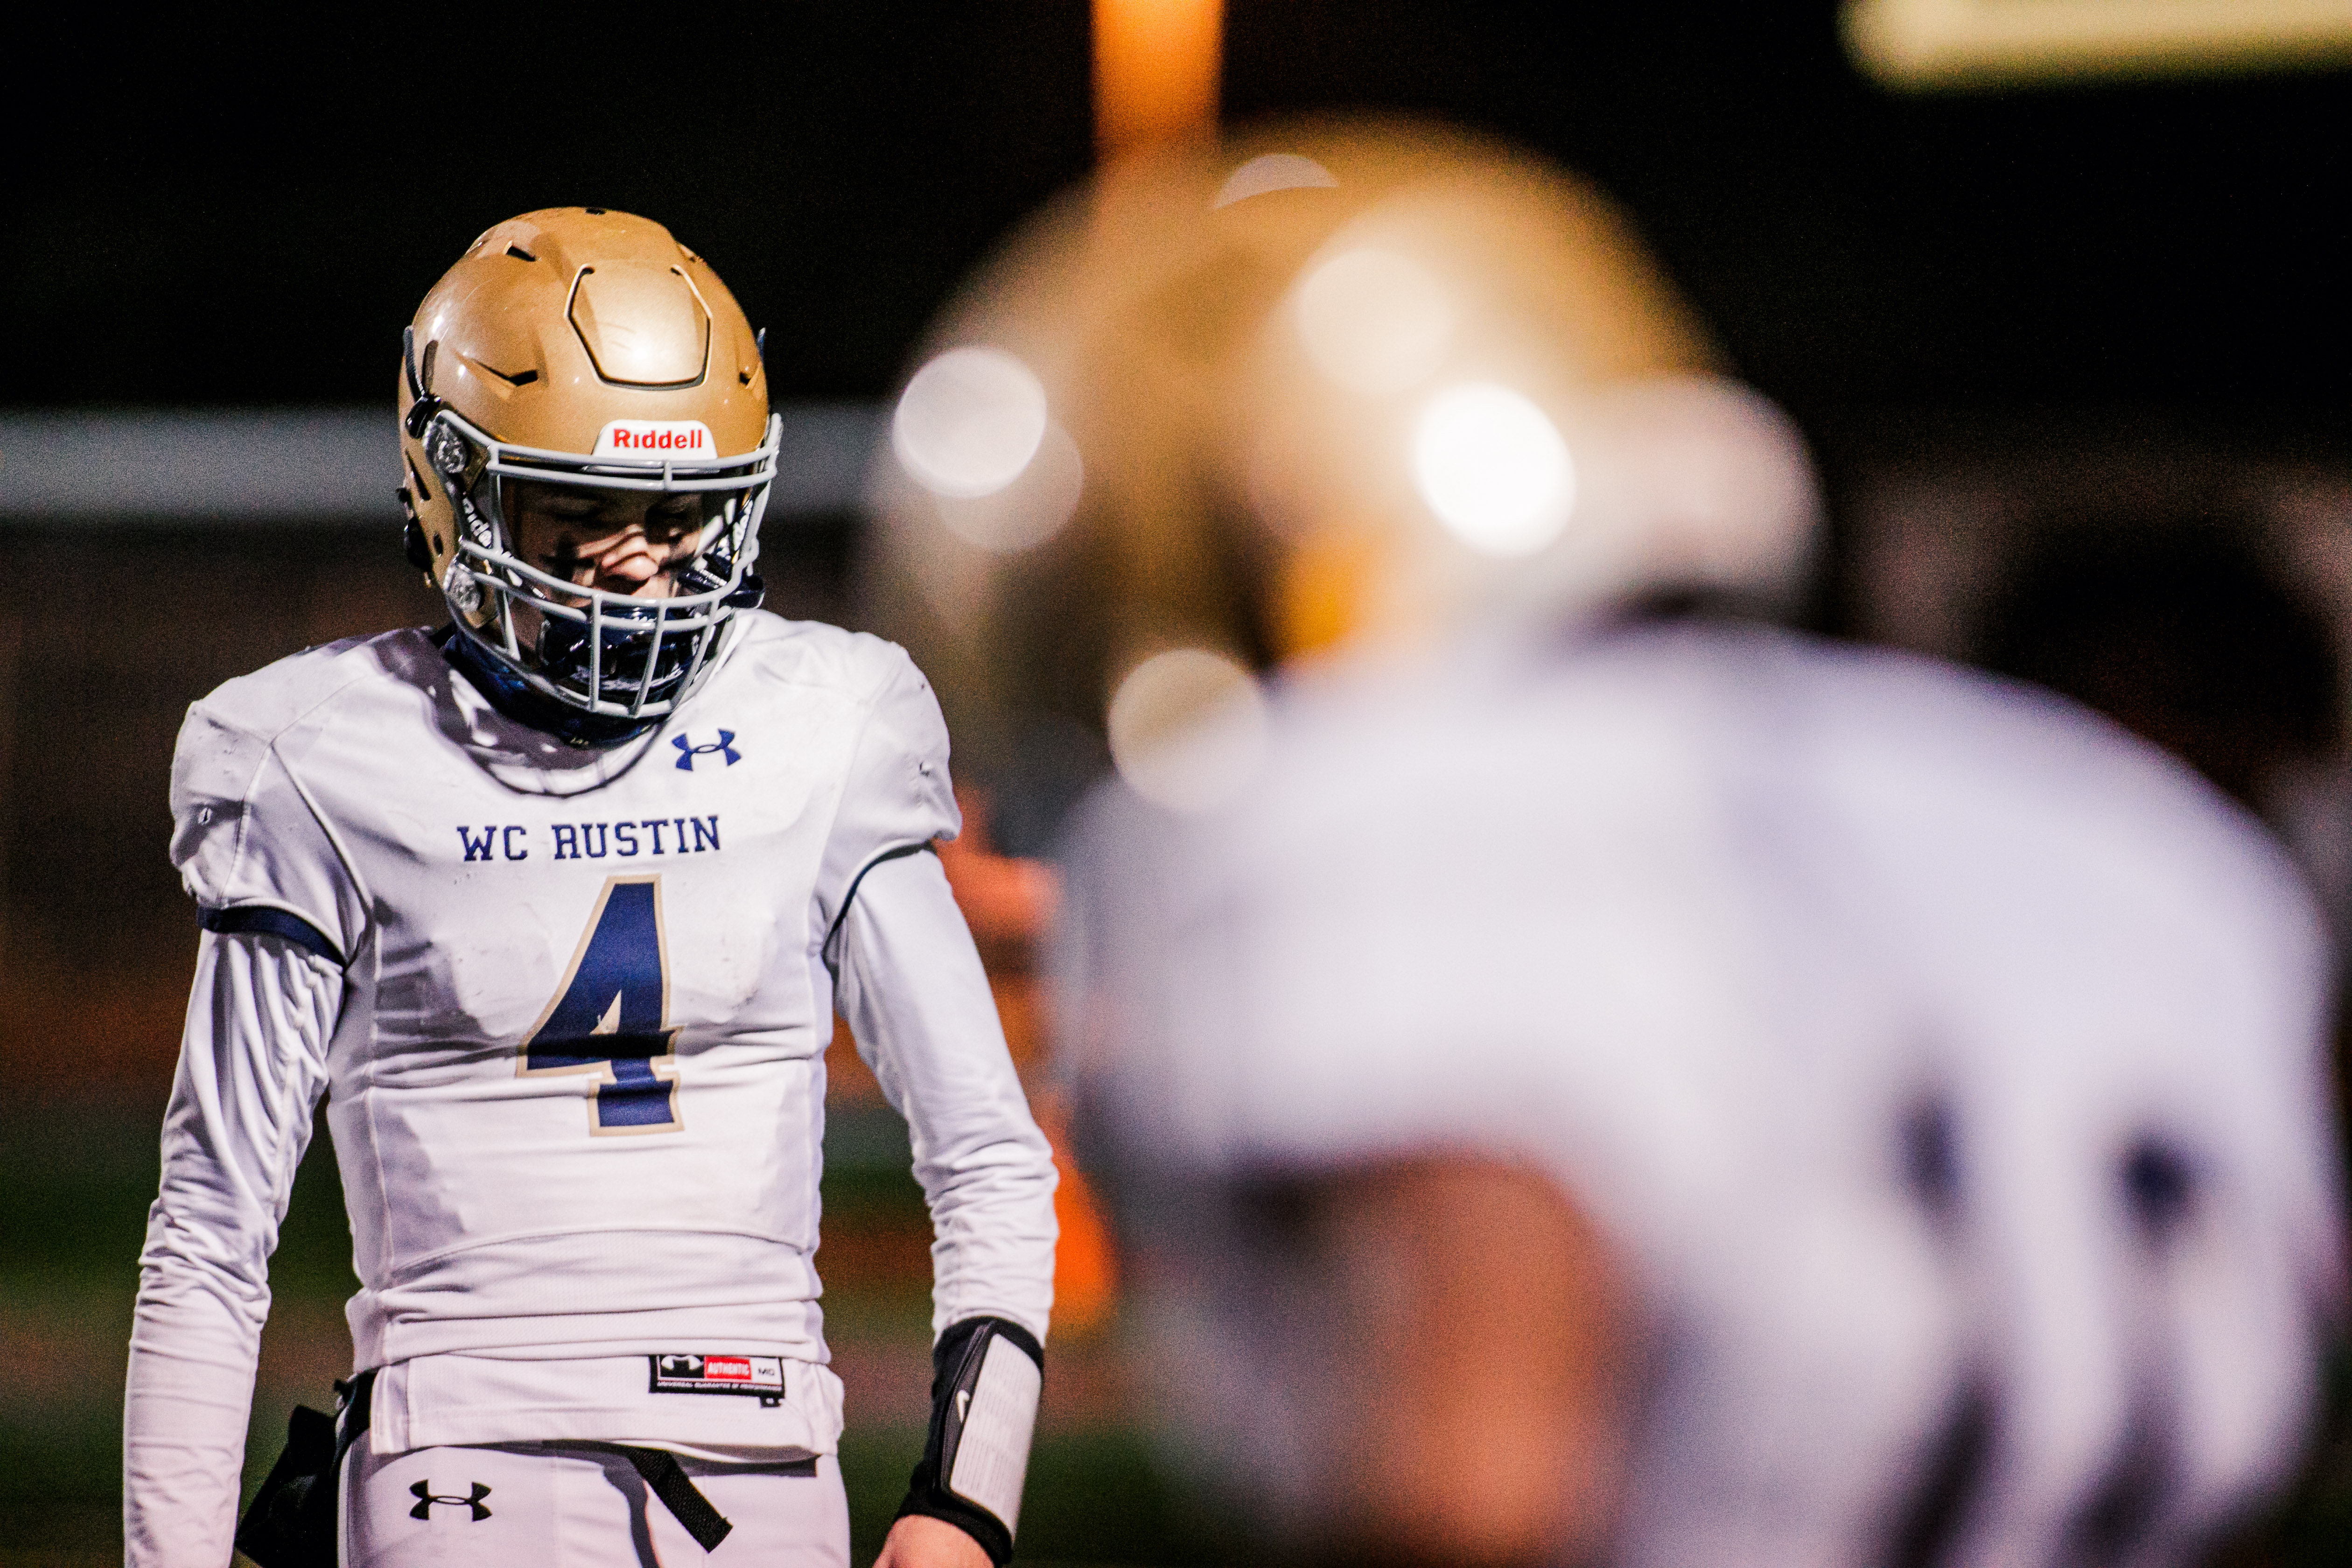 West Chester Rustin's John Crispino walks off dejectedly after an Upper Dublin touchdown. (Nate Heckenberger - For MediaNews Group)